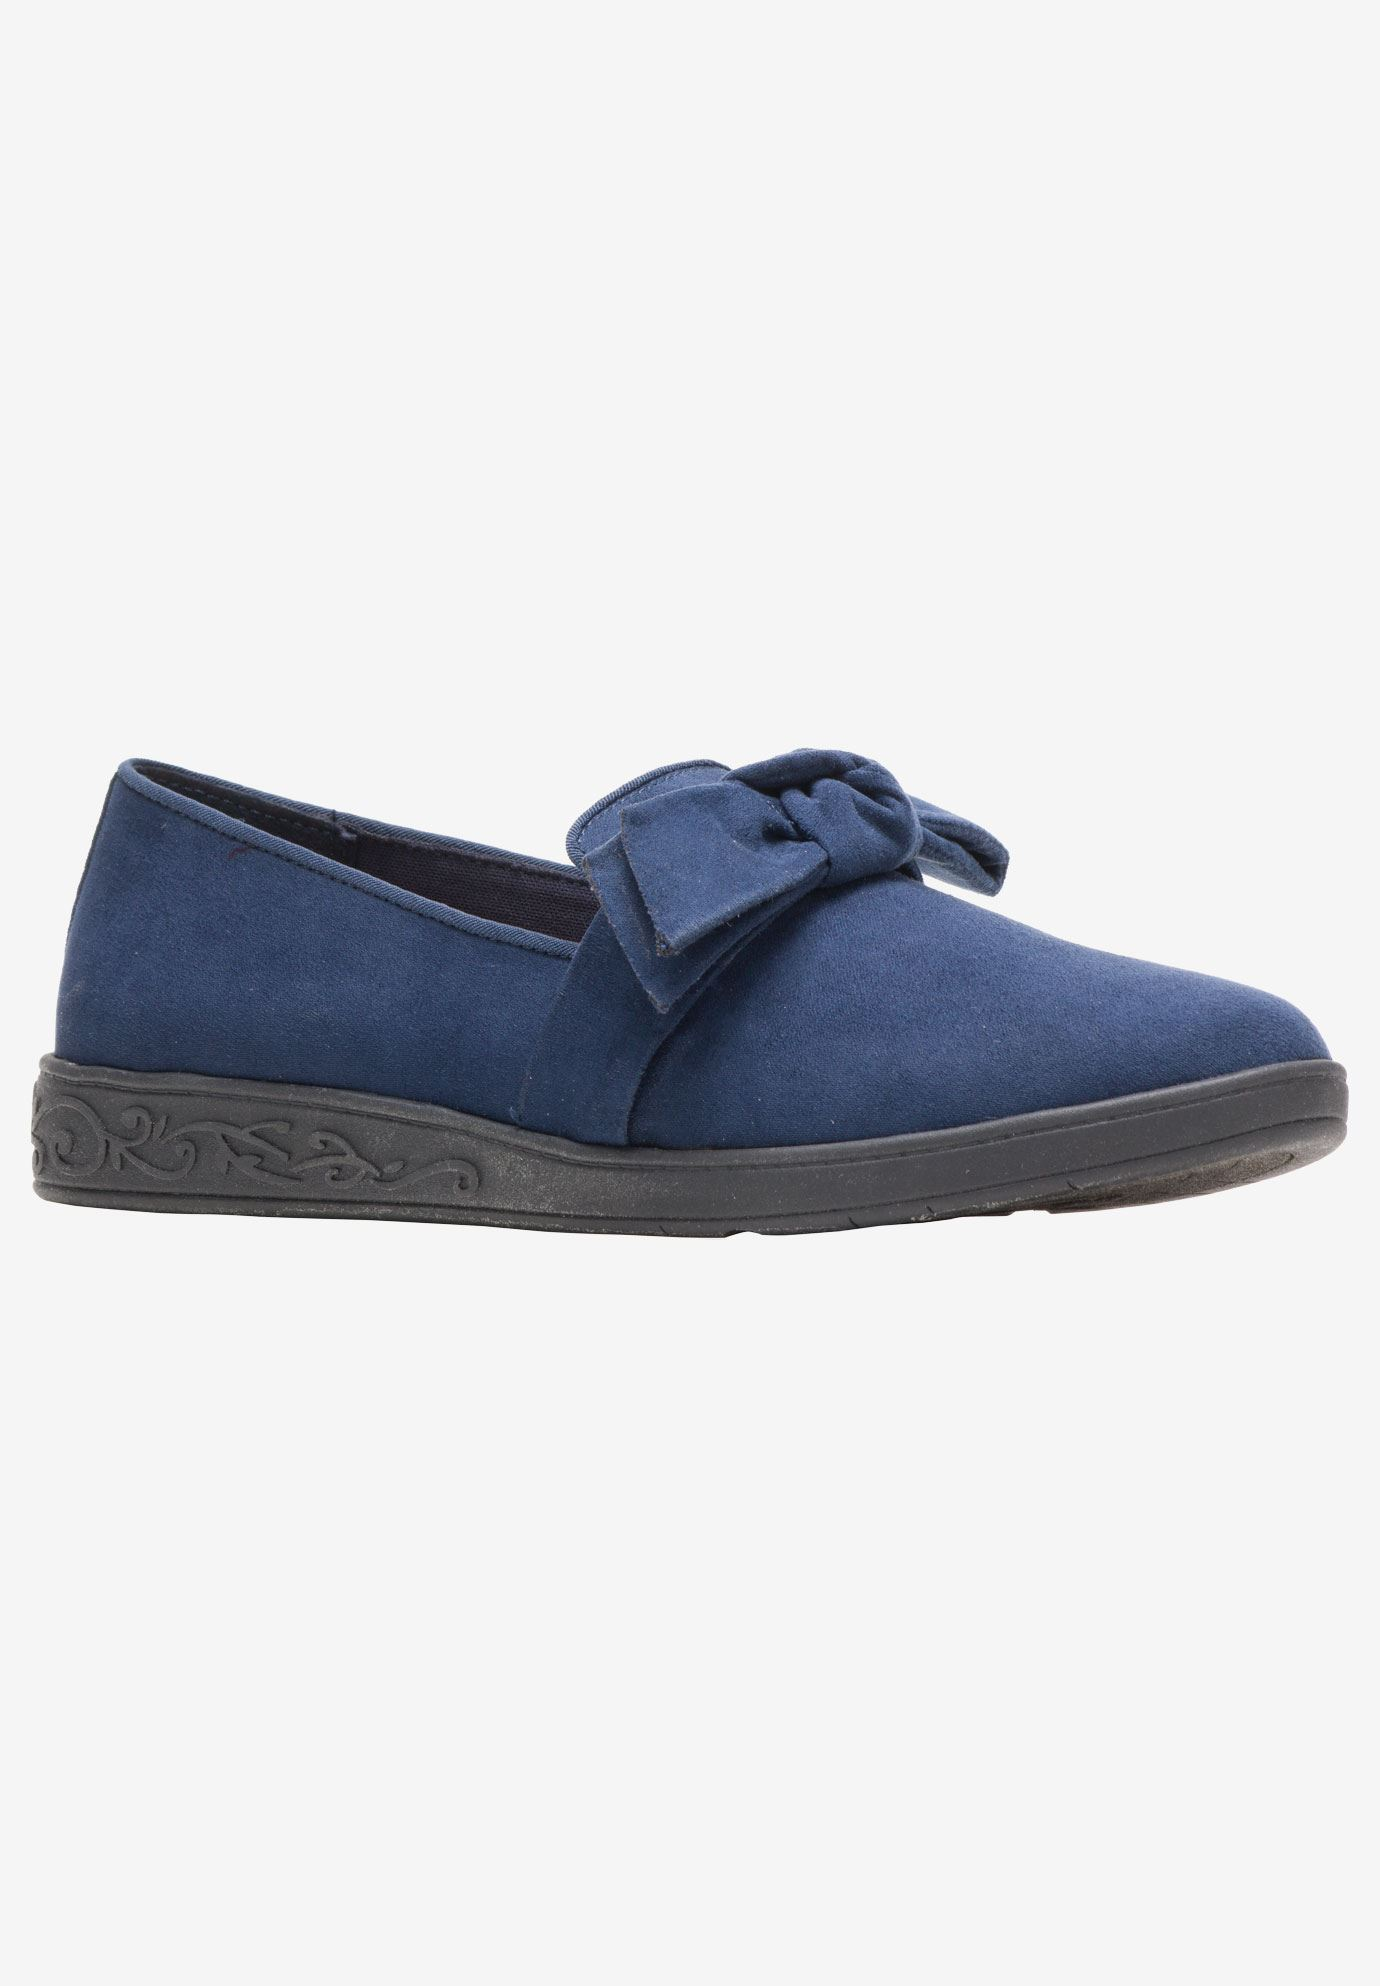 Pazazz Slip-On by Soft Style,